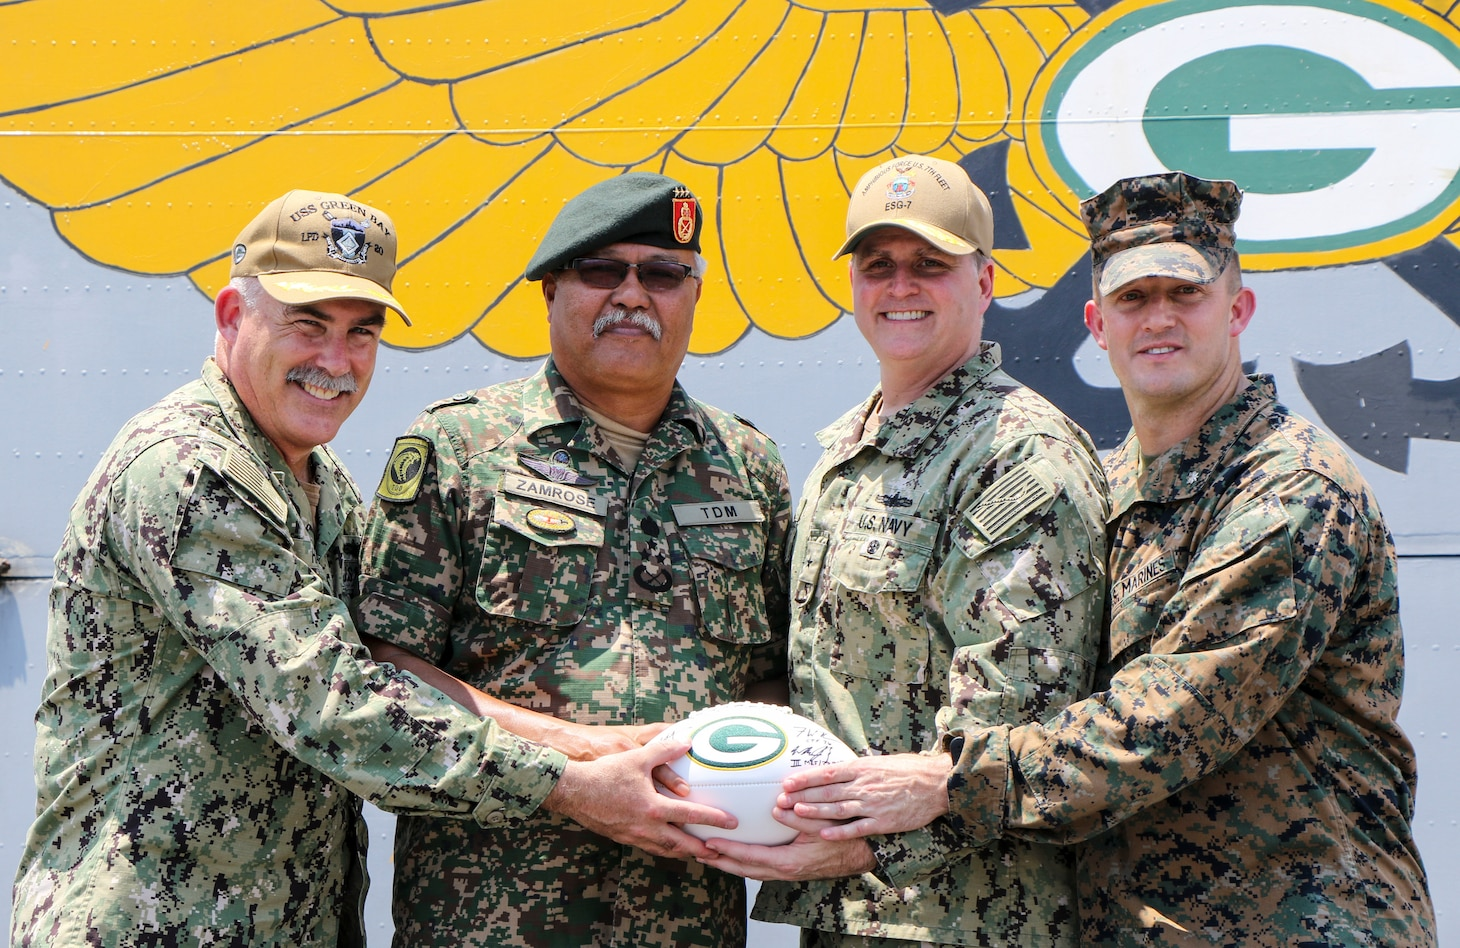 CELEBES SEA (Sept. 30, 2019) Captain Michael Harris, commanding officer of the amphibious transport dock ship USS Green Bay (LPD 20), Malaysian Armed Forces (MAF) Lt. Gen. Dato' Wira Zambrose bin Mohd Zain, Army Field Eastern Commander, Rear Adm. Fred Kacher, commander of Expeditionary Strike Group 7, and Lt. Col. William Jacobs, commander of troops, 3rd Marine Division, pose for a photo with a Green Bay Packers football given as a memento during an opening ceremony for exercise Tiger Strike 2019. Tiger Strike focuses on strengthening combined U.S. and Malaysian military interoperability and increasing combat readiness through amphibious operations and cultural exchanges between the MAF and the U.S. Navy, Marine Corps team.